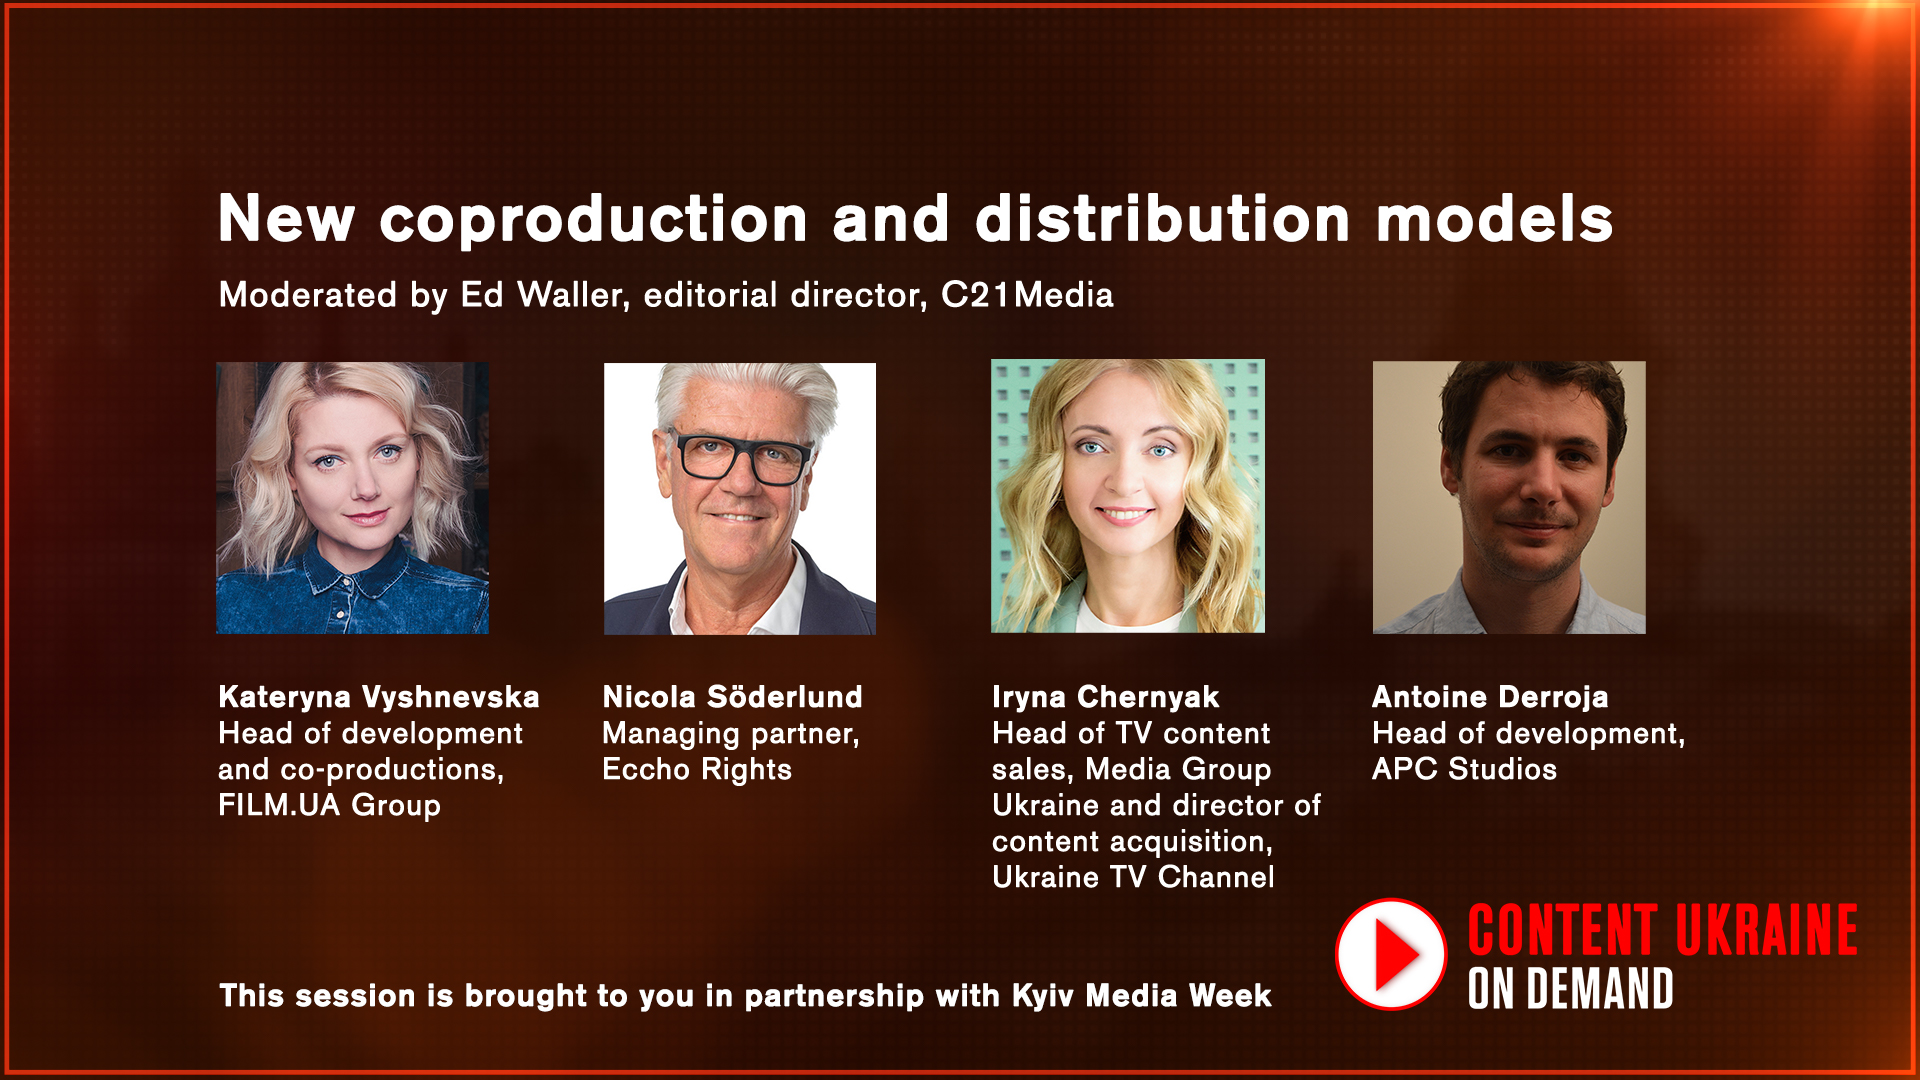 New coproduction and distribution models